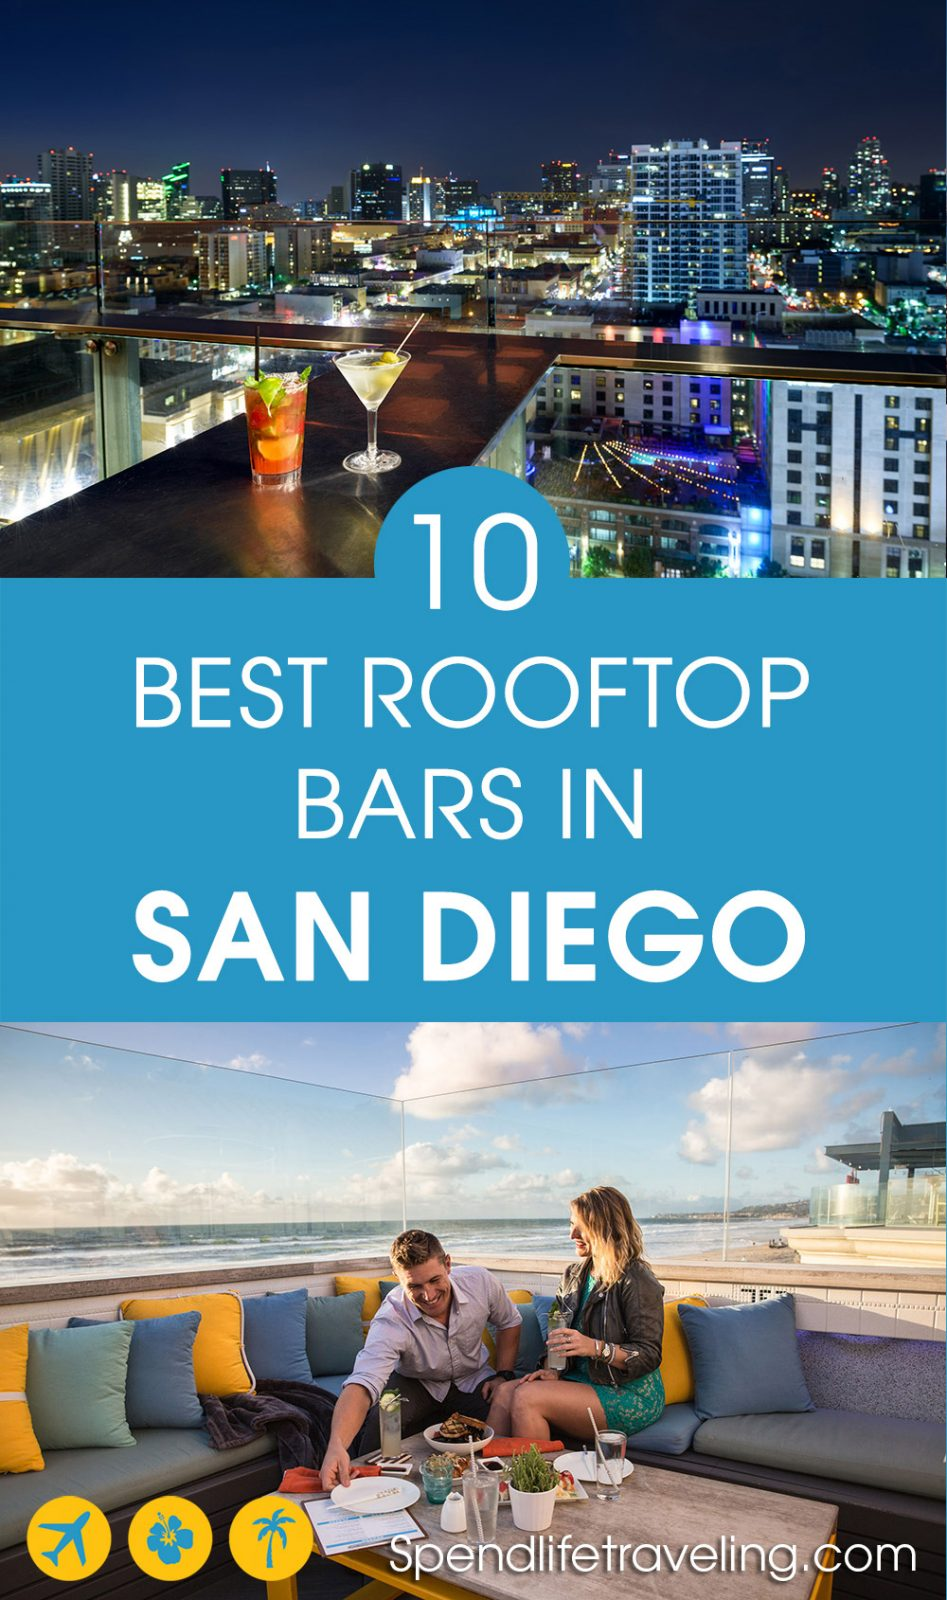 A list and review of 10 of the best rooftop bars in San Diego, California.